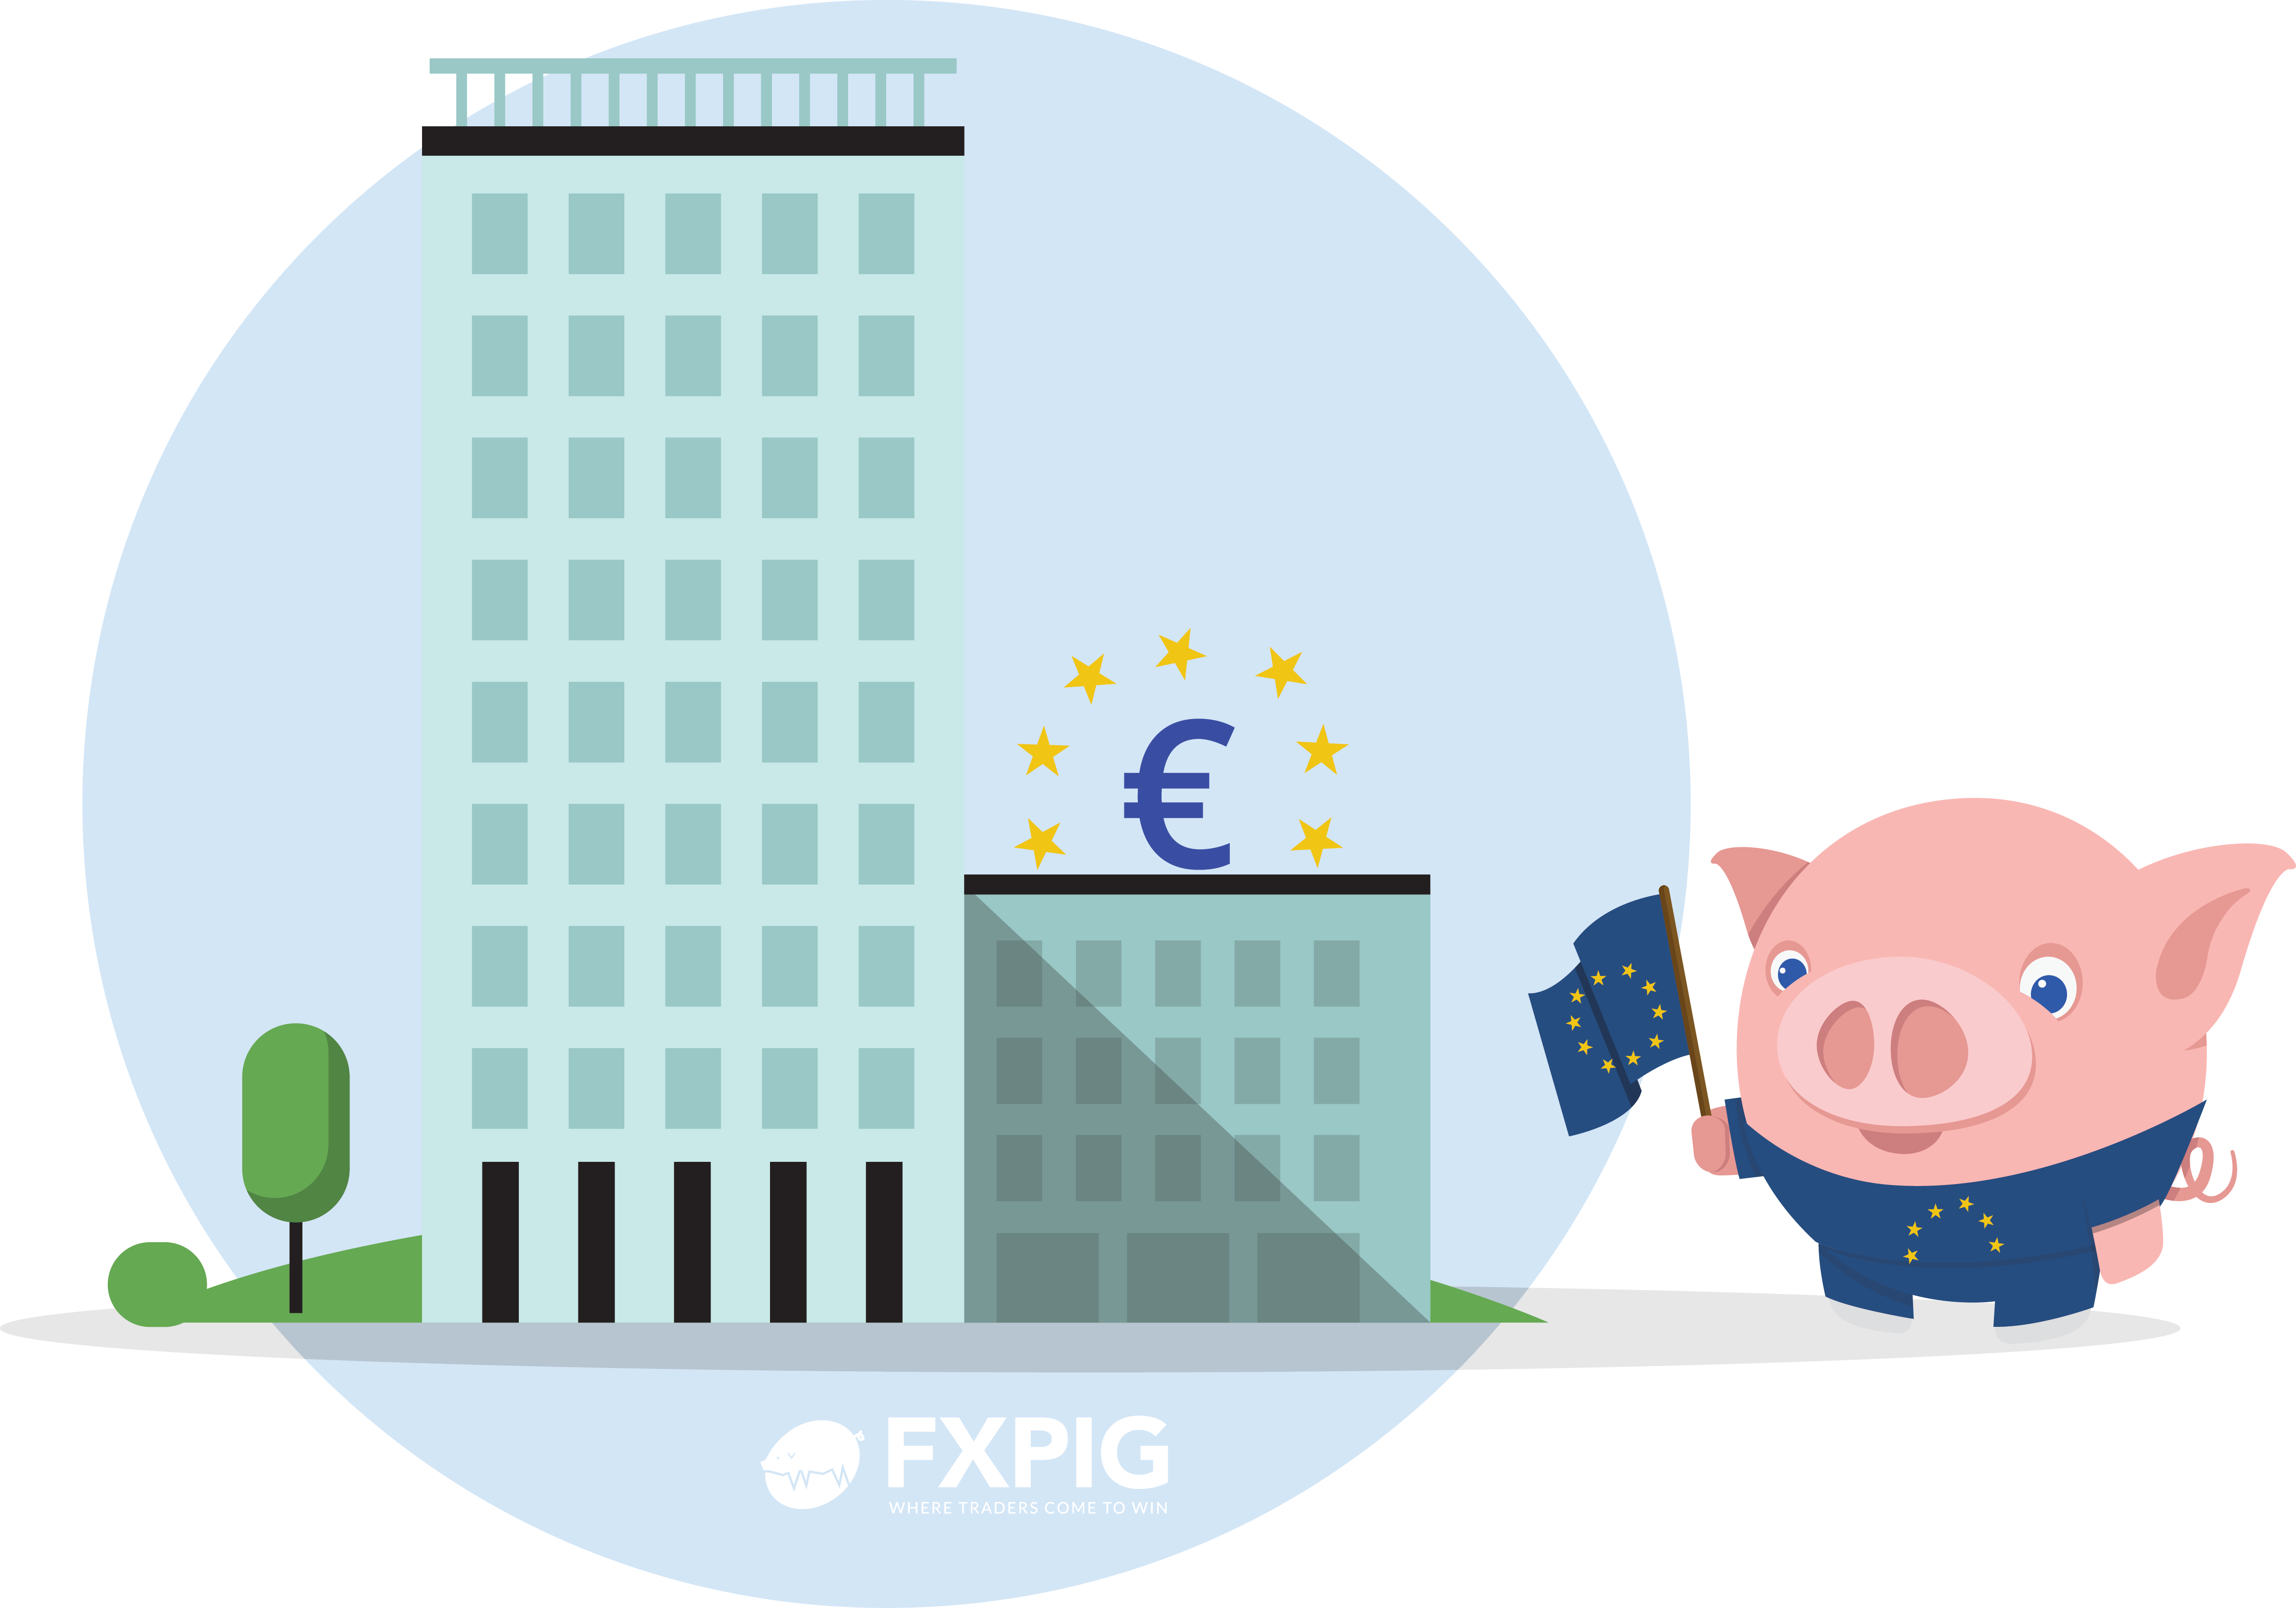 FOREX_ECB-will-end-asset-buys-this-year_FXPIG